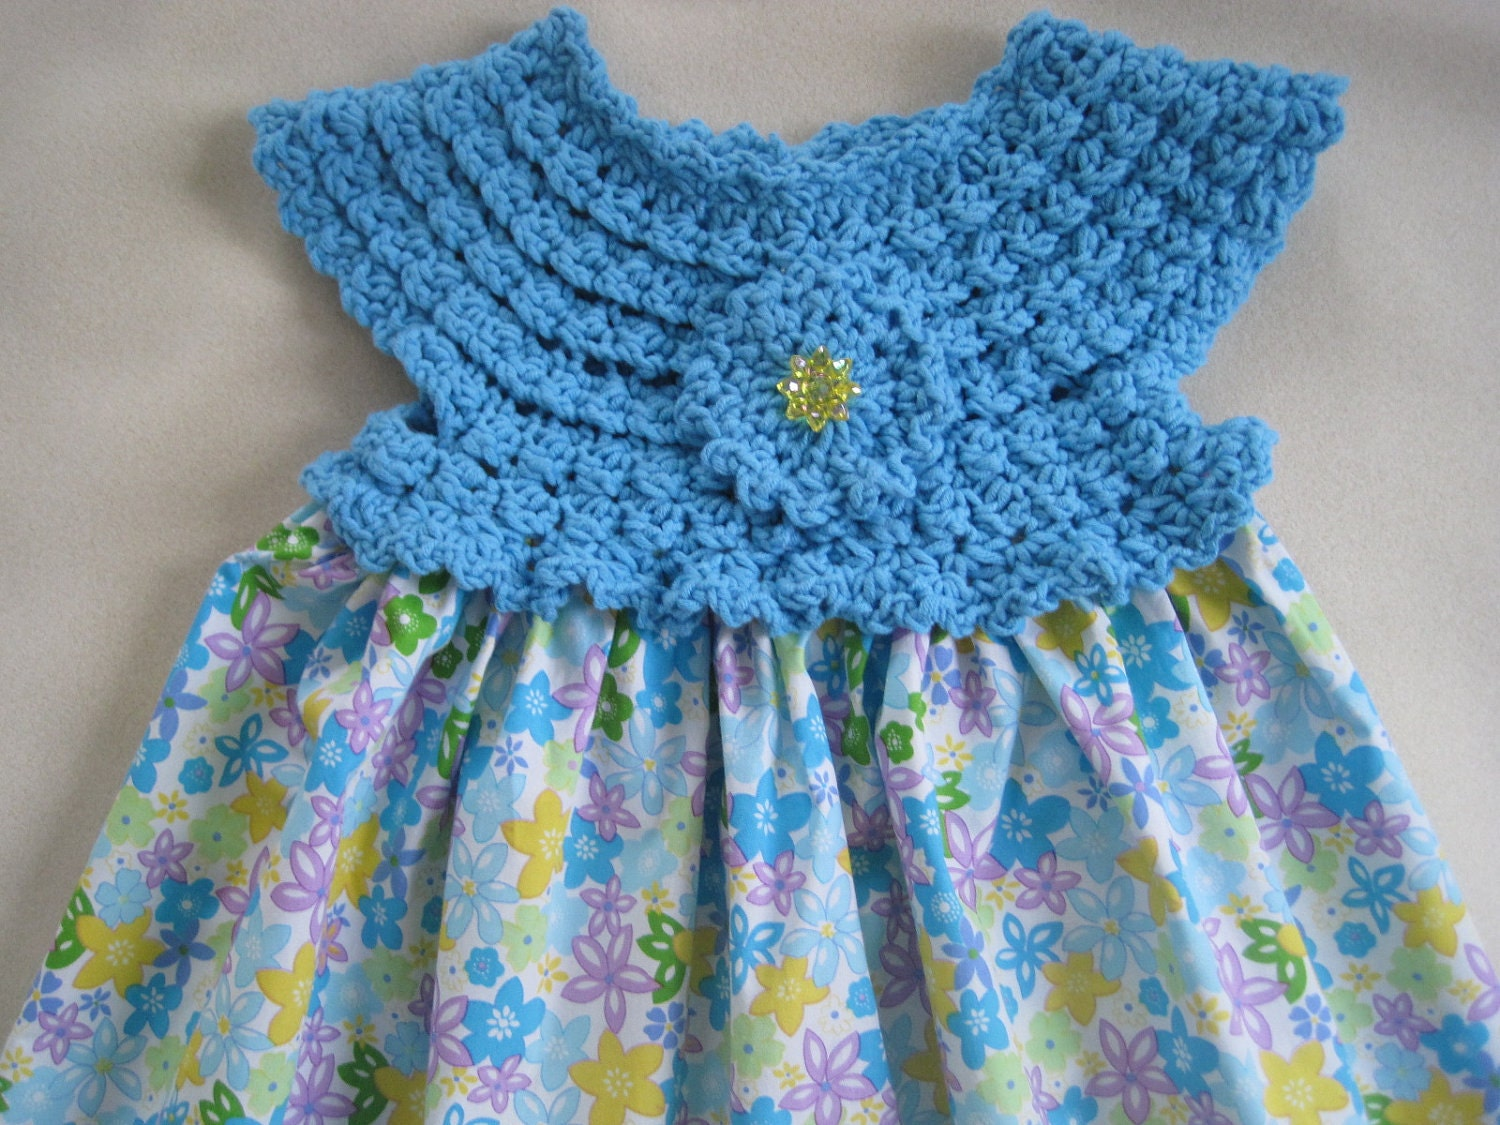 Dress Blue With Flowers Crochet Bodice Fabric Skirt By